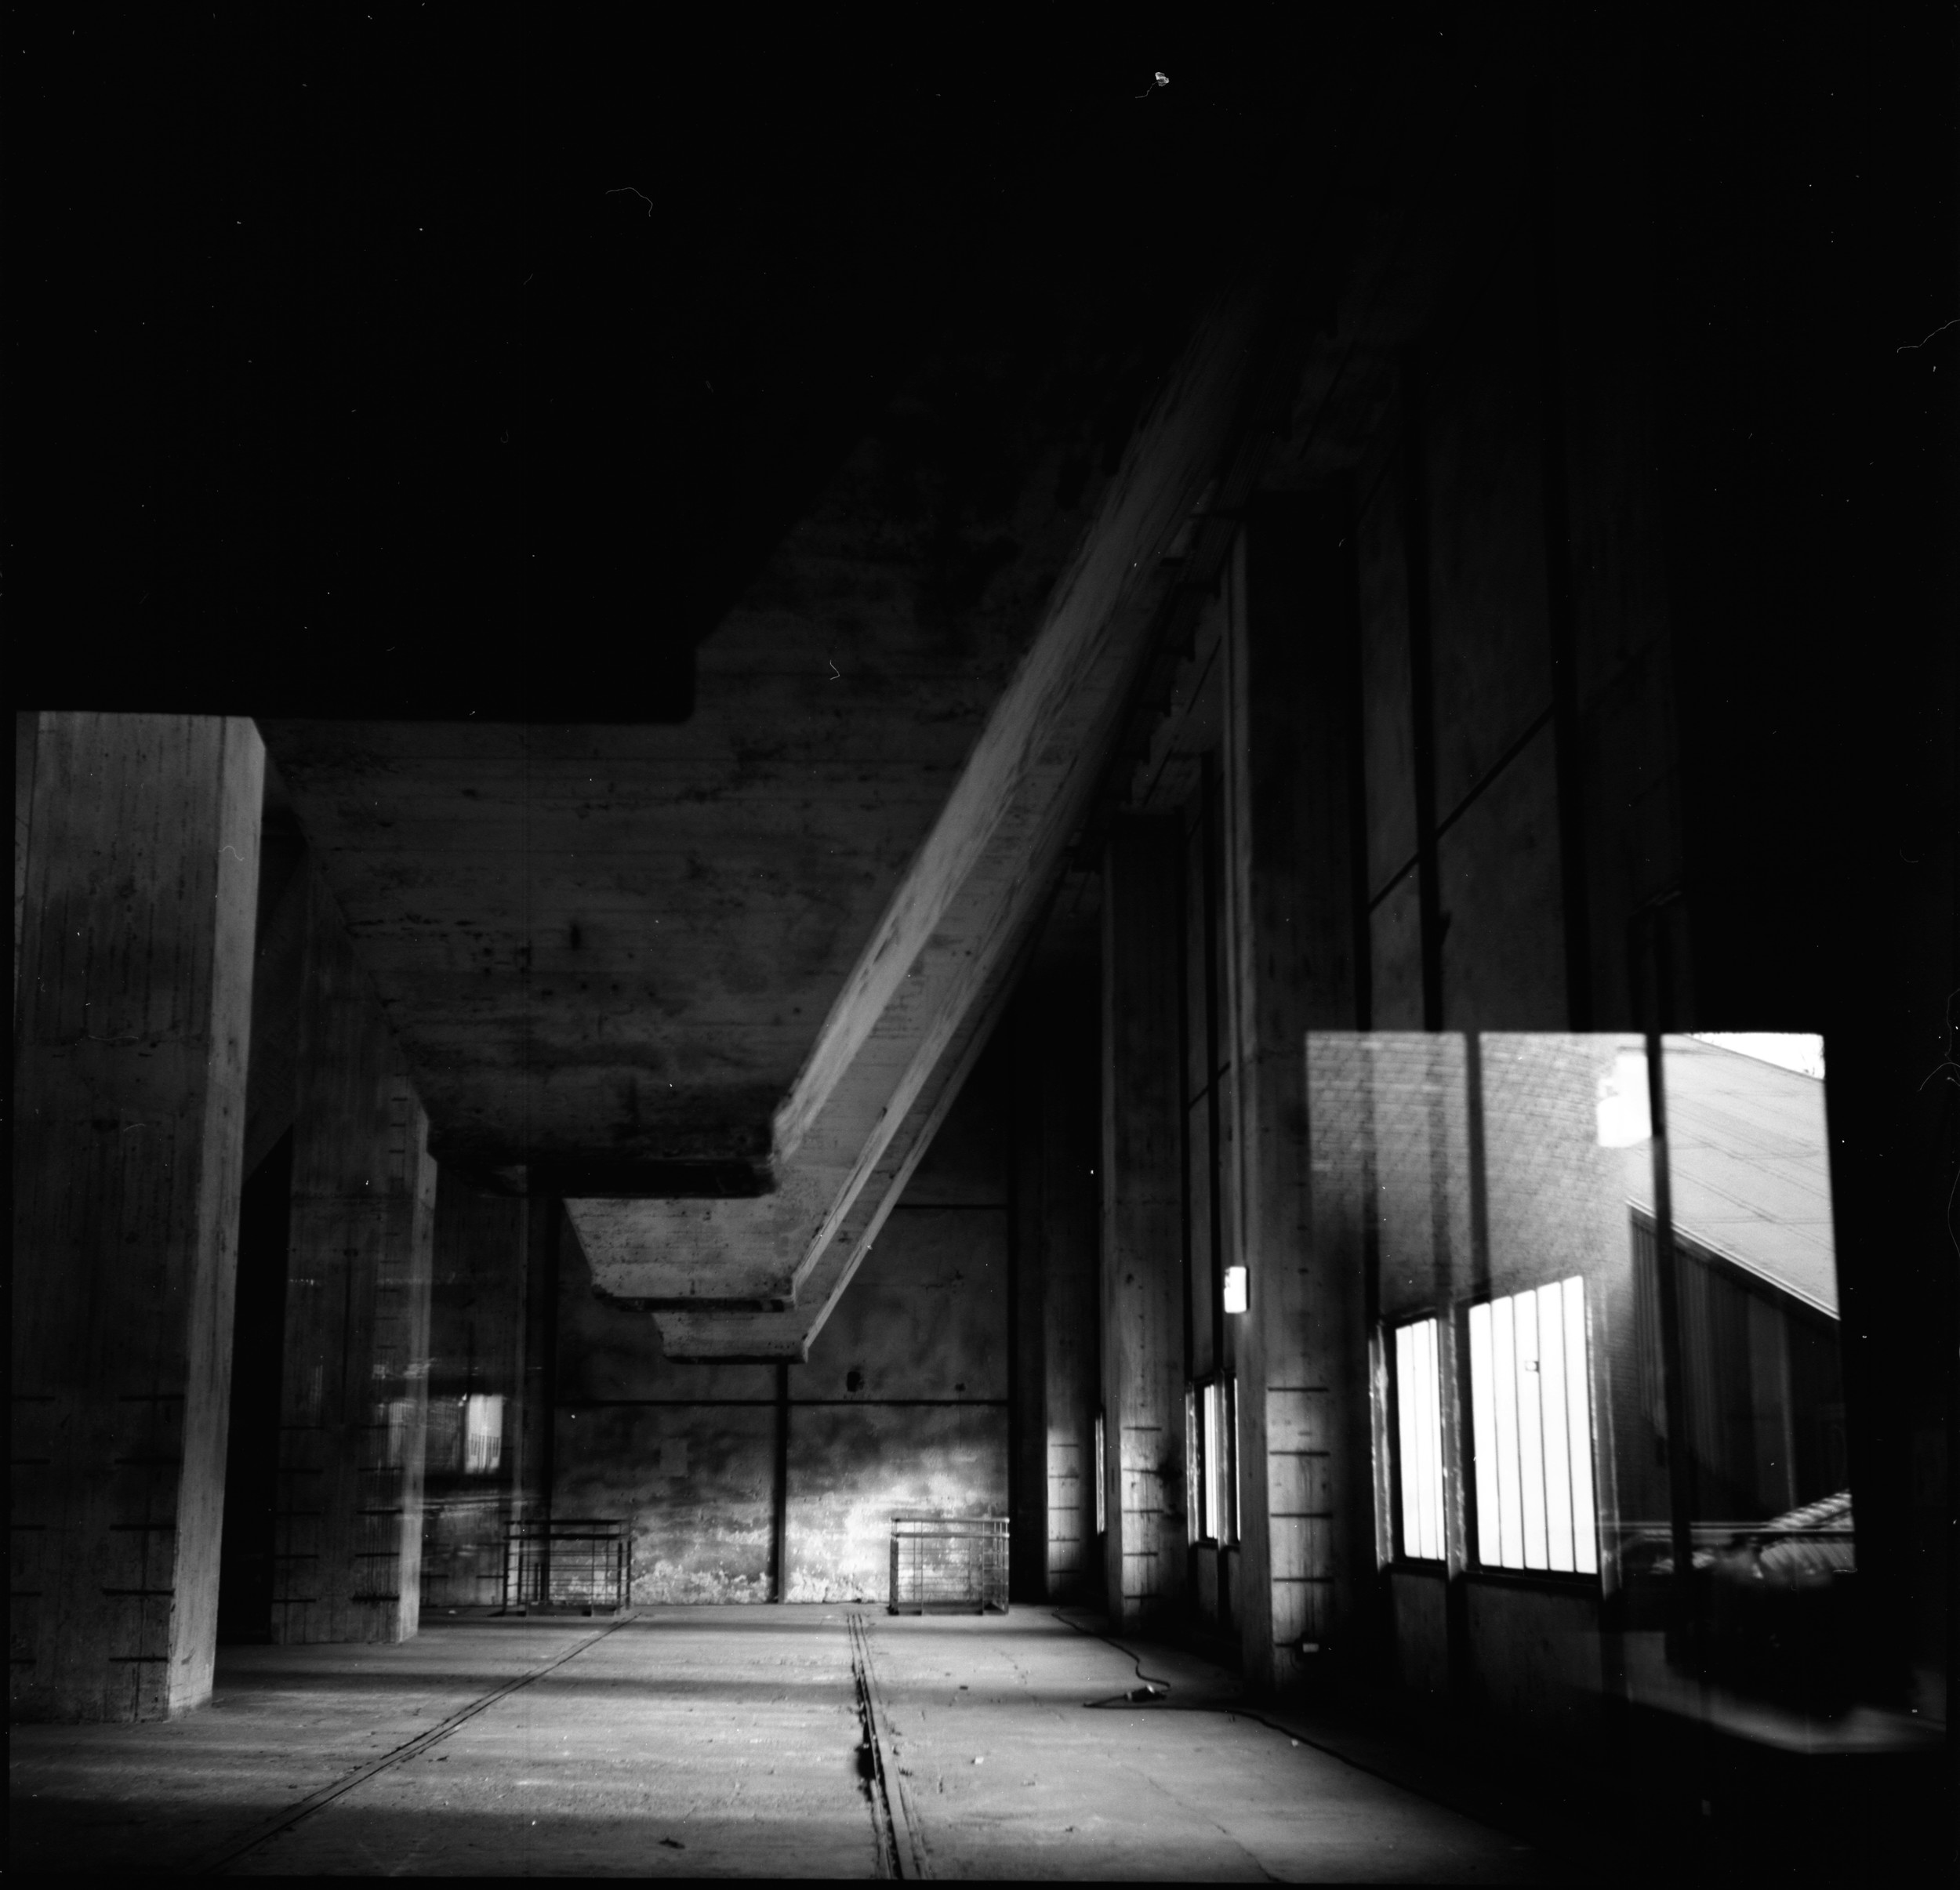 ELF_Zollverein_02.jpg